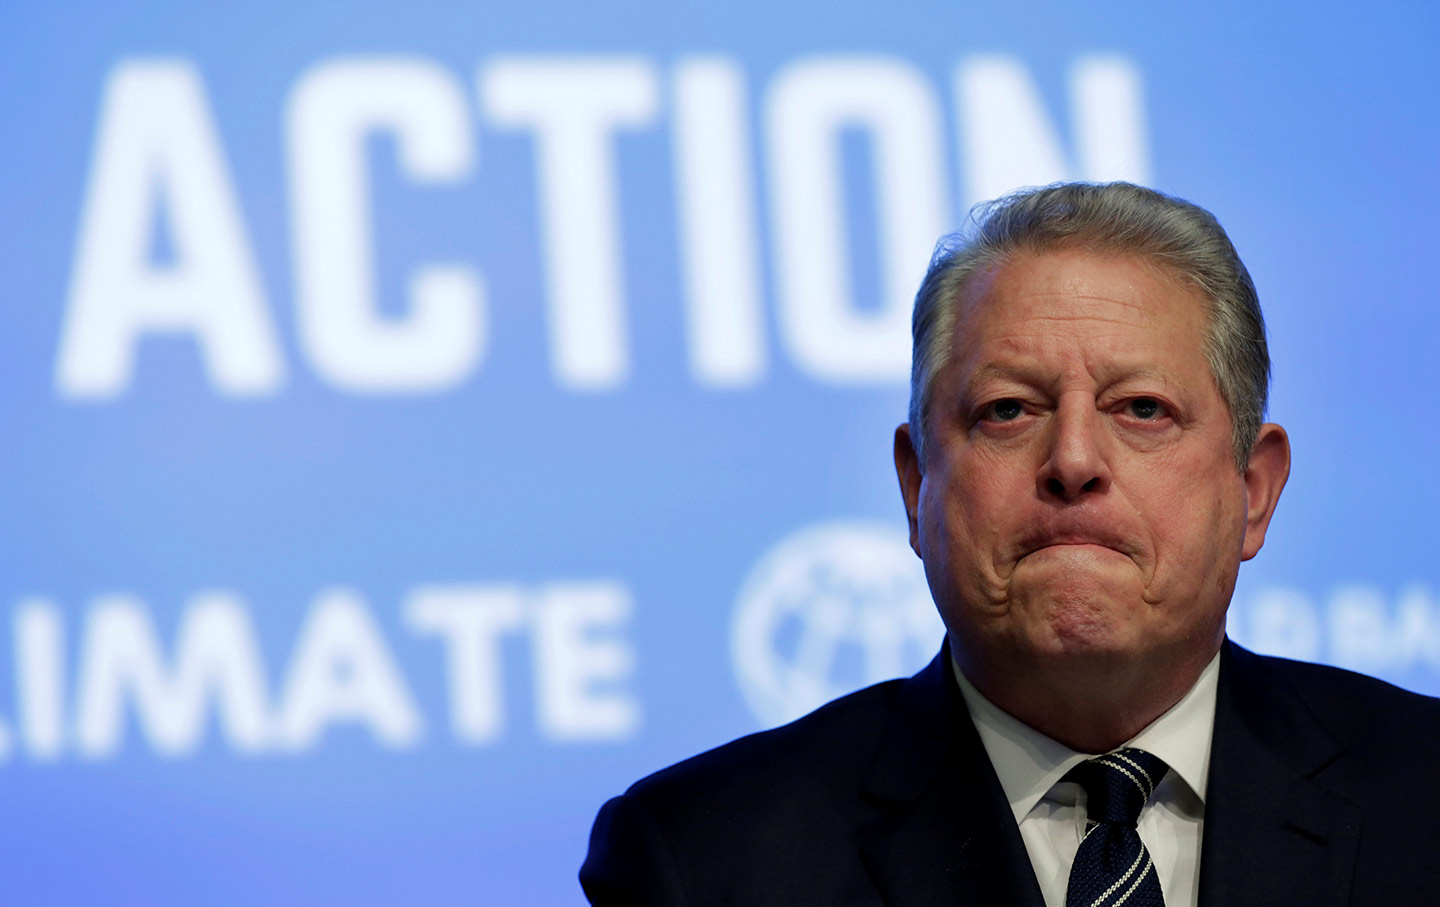 Al Gore attends a climate action session